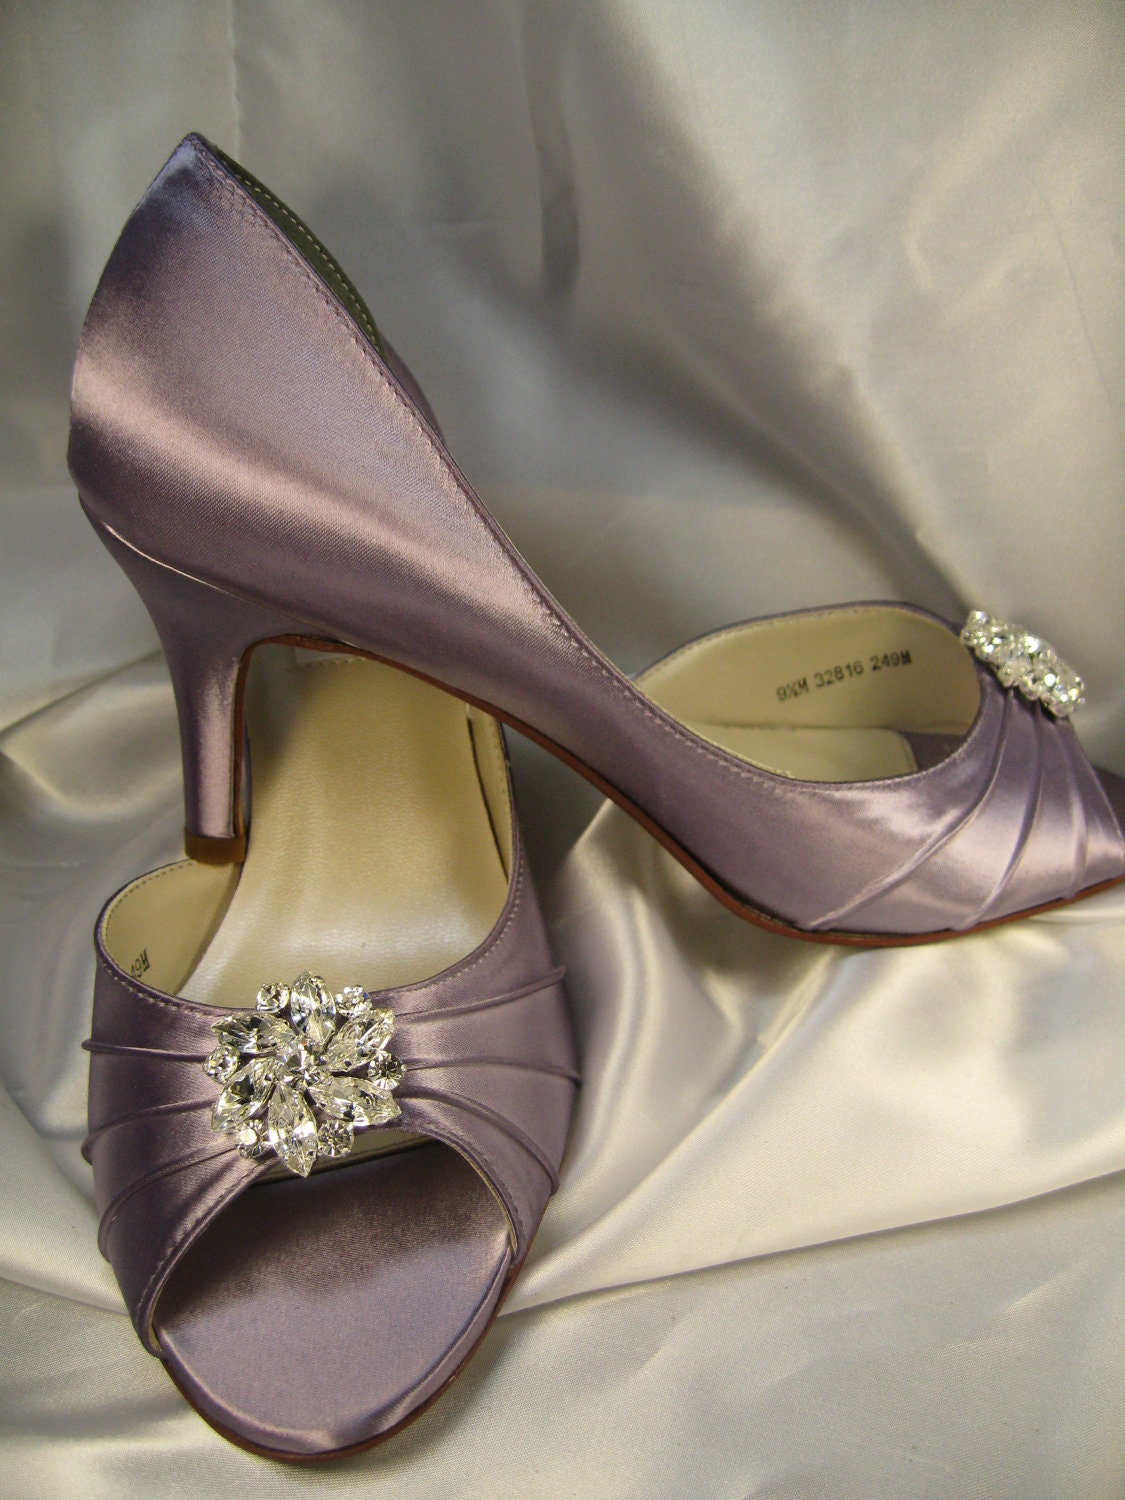 Wedding Shoes Bridal Satin Pale Purple Shoes Over 100 Colors To Pick From Wedding Shoes with Rhinestone Crystal Flower - ABiddaBling